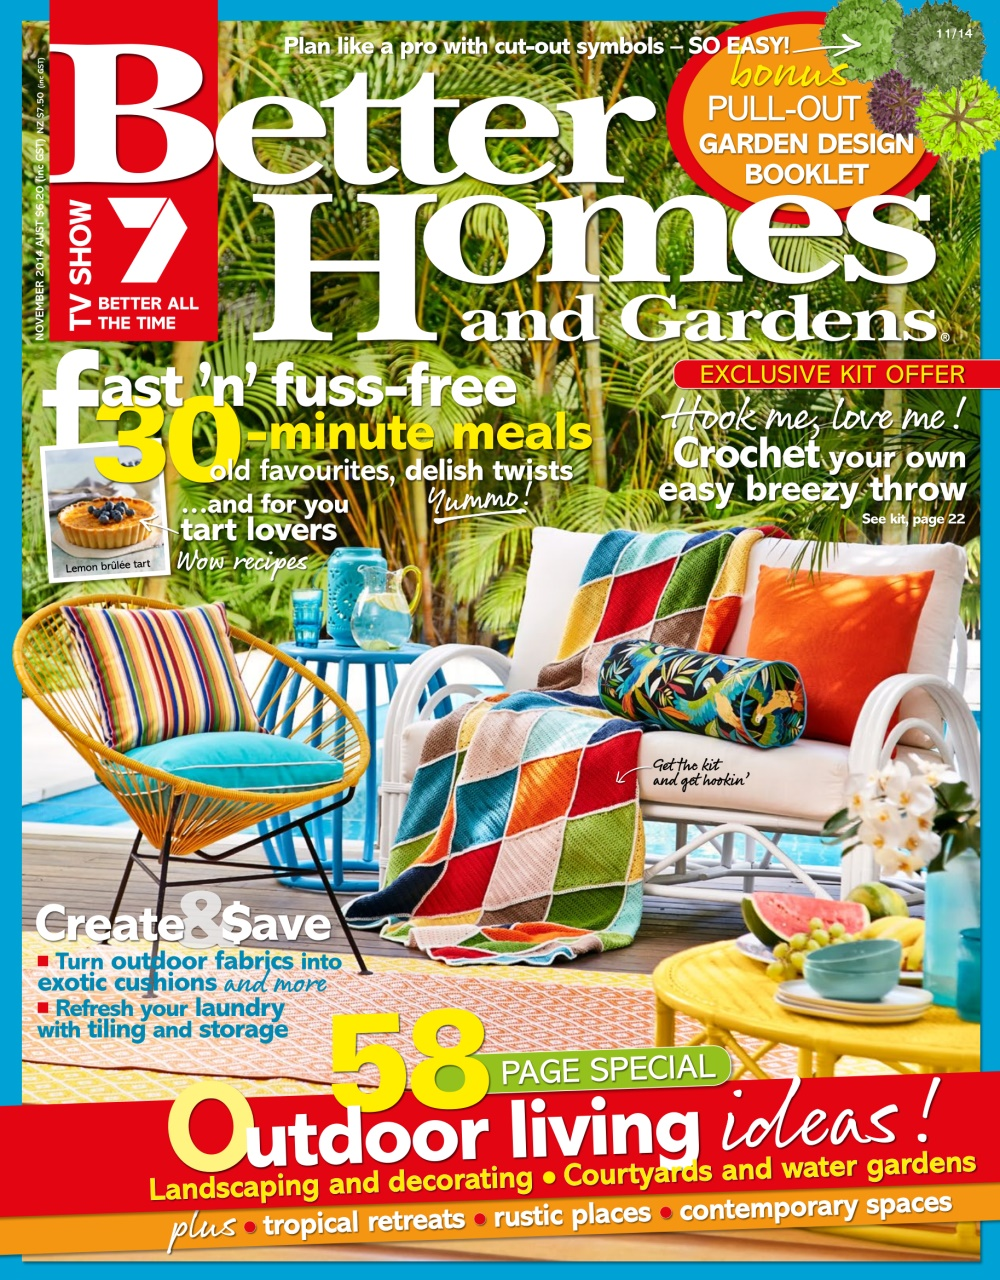 Better homes and gardens australia november 2014 Better homes and gardens current issue